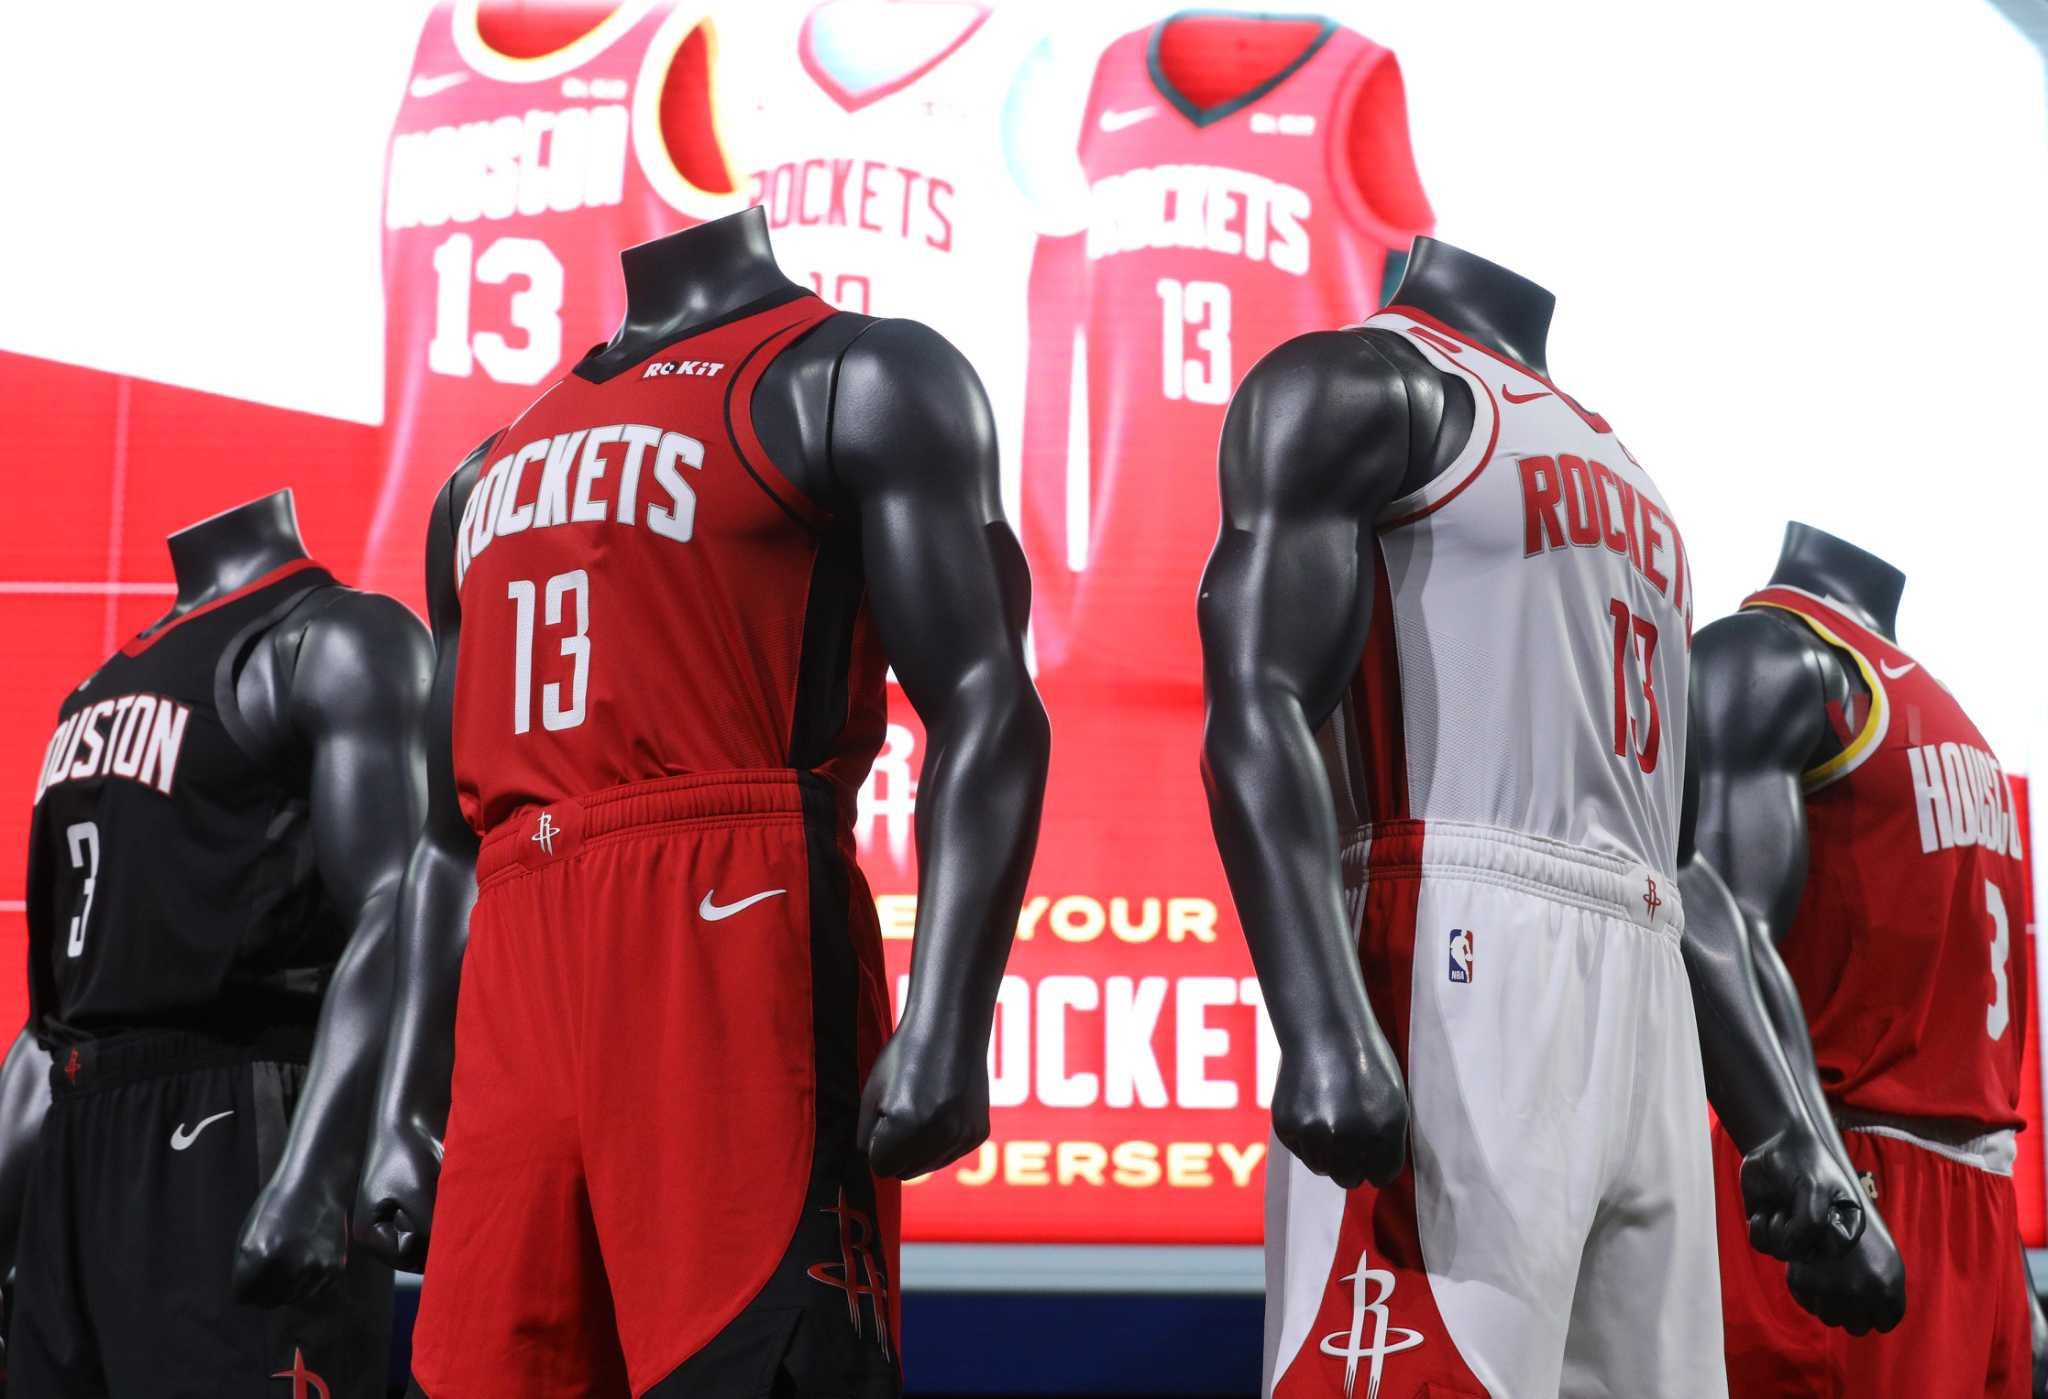 New Rockets uniforms unveiled - HoustonChronicle.com